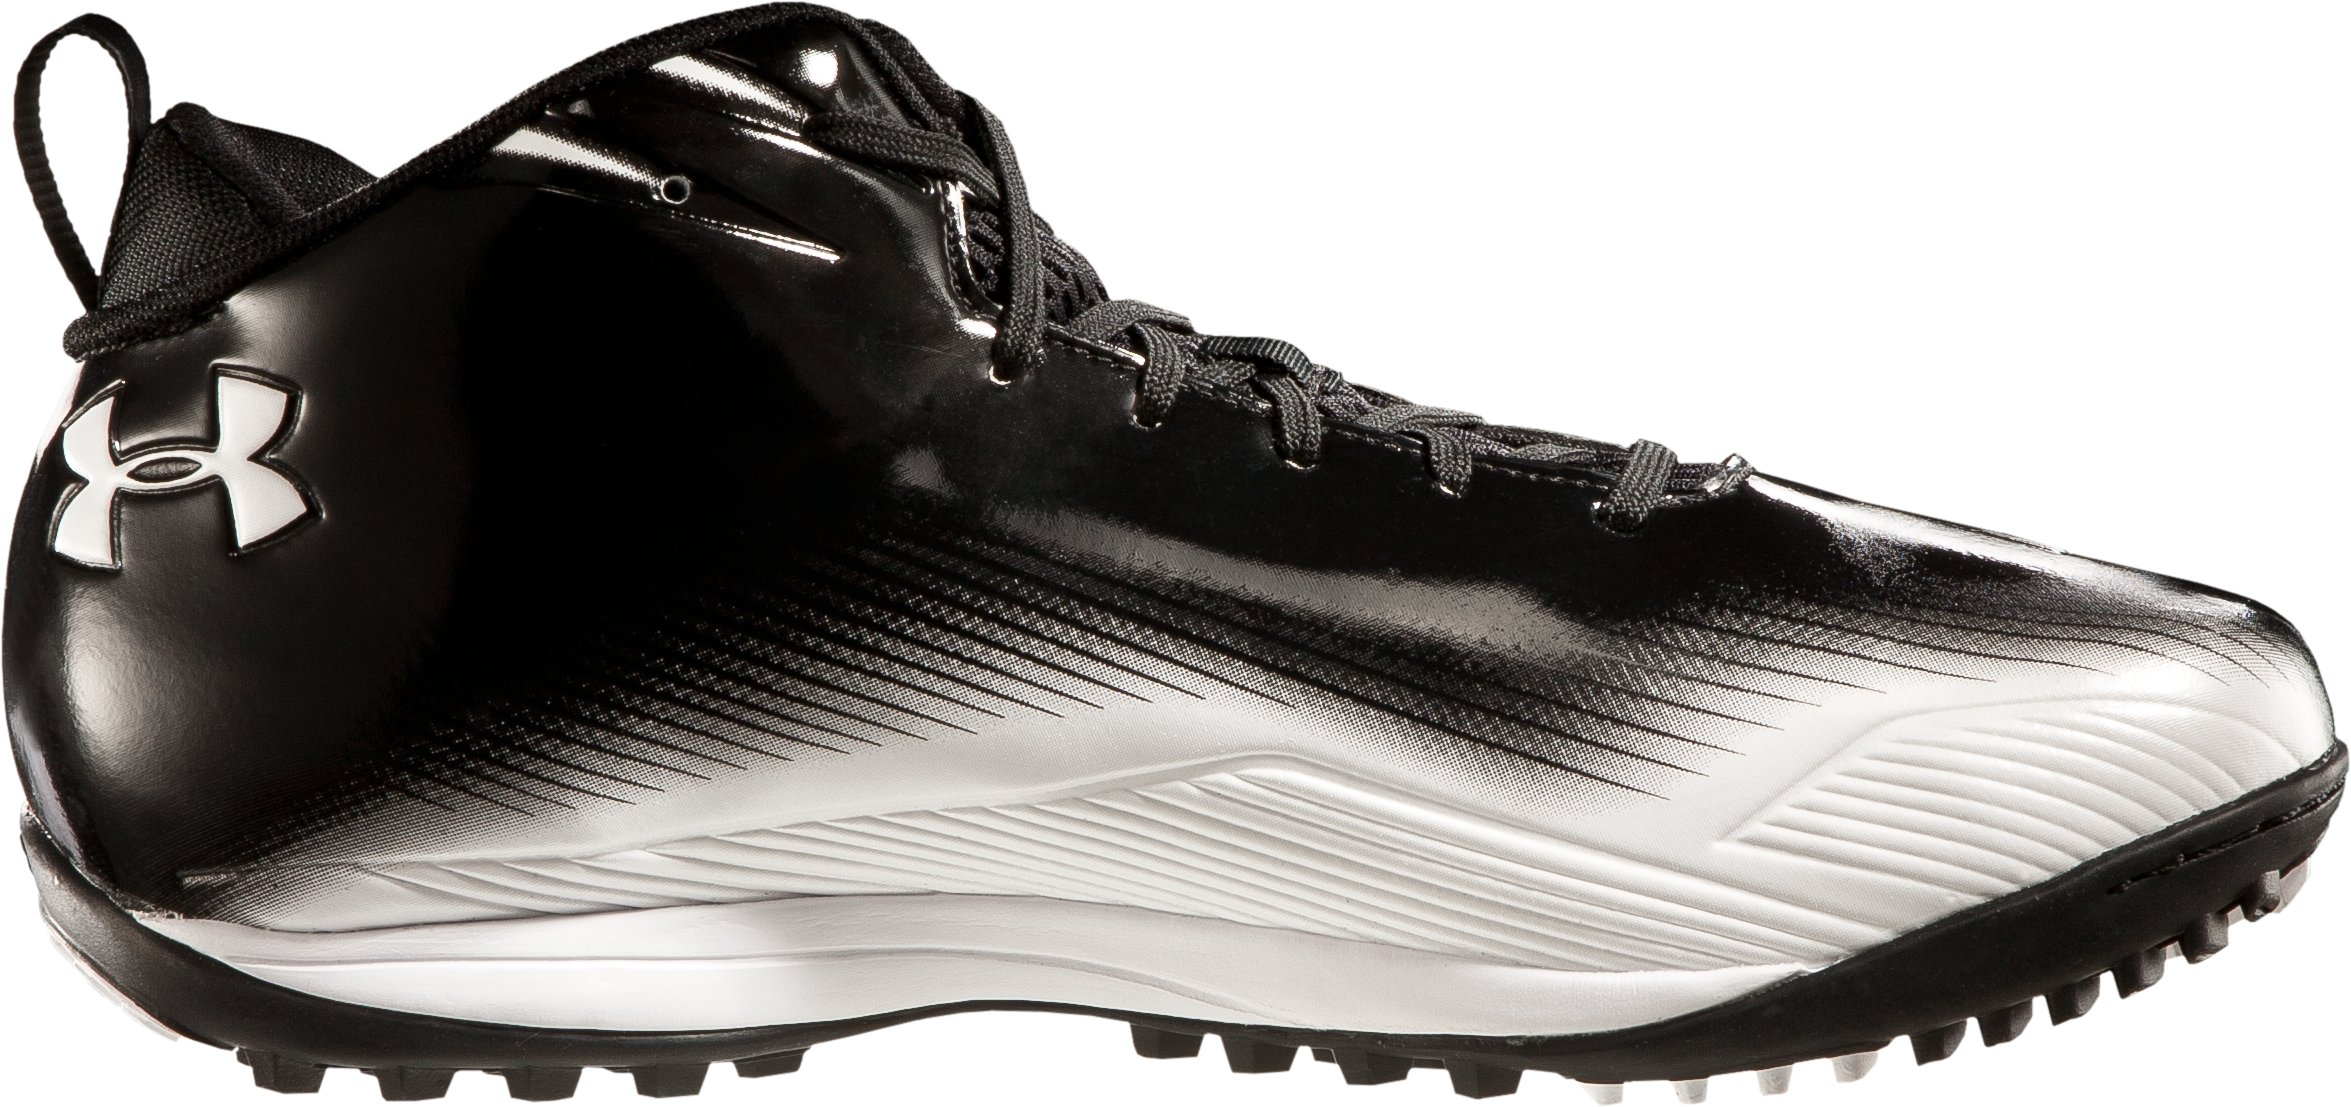 Men's UA Nitro III Mid-Cut Molded Lacrosse Turf Shoes, Black